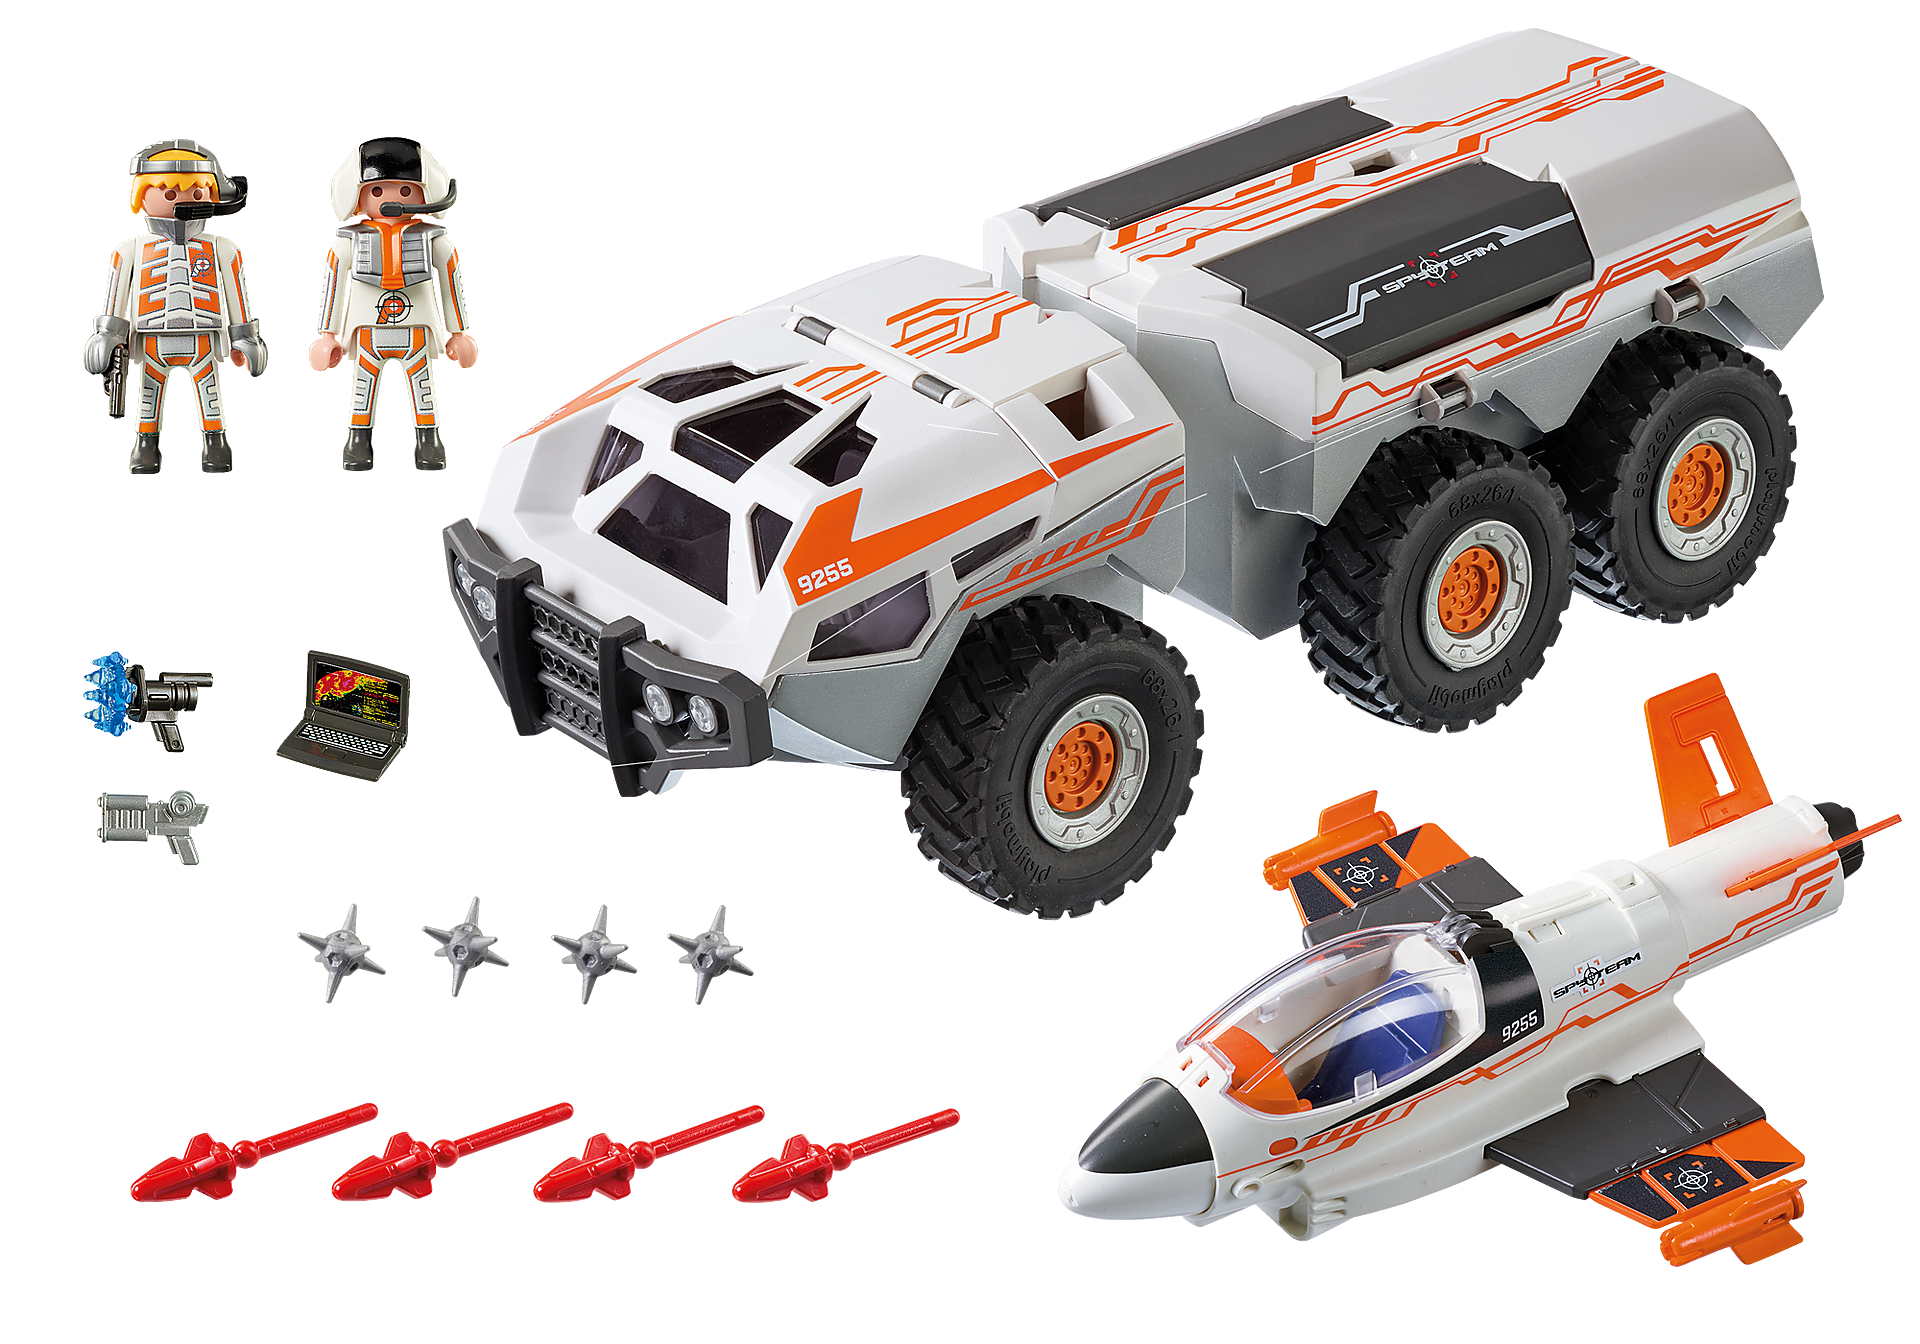 9255 Spy Team Battle Truck zoom image4